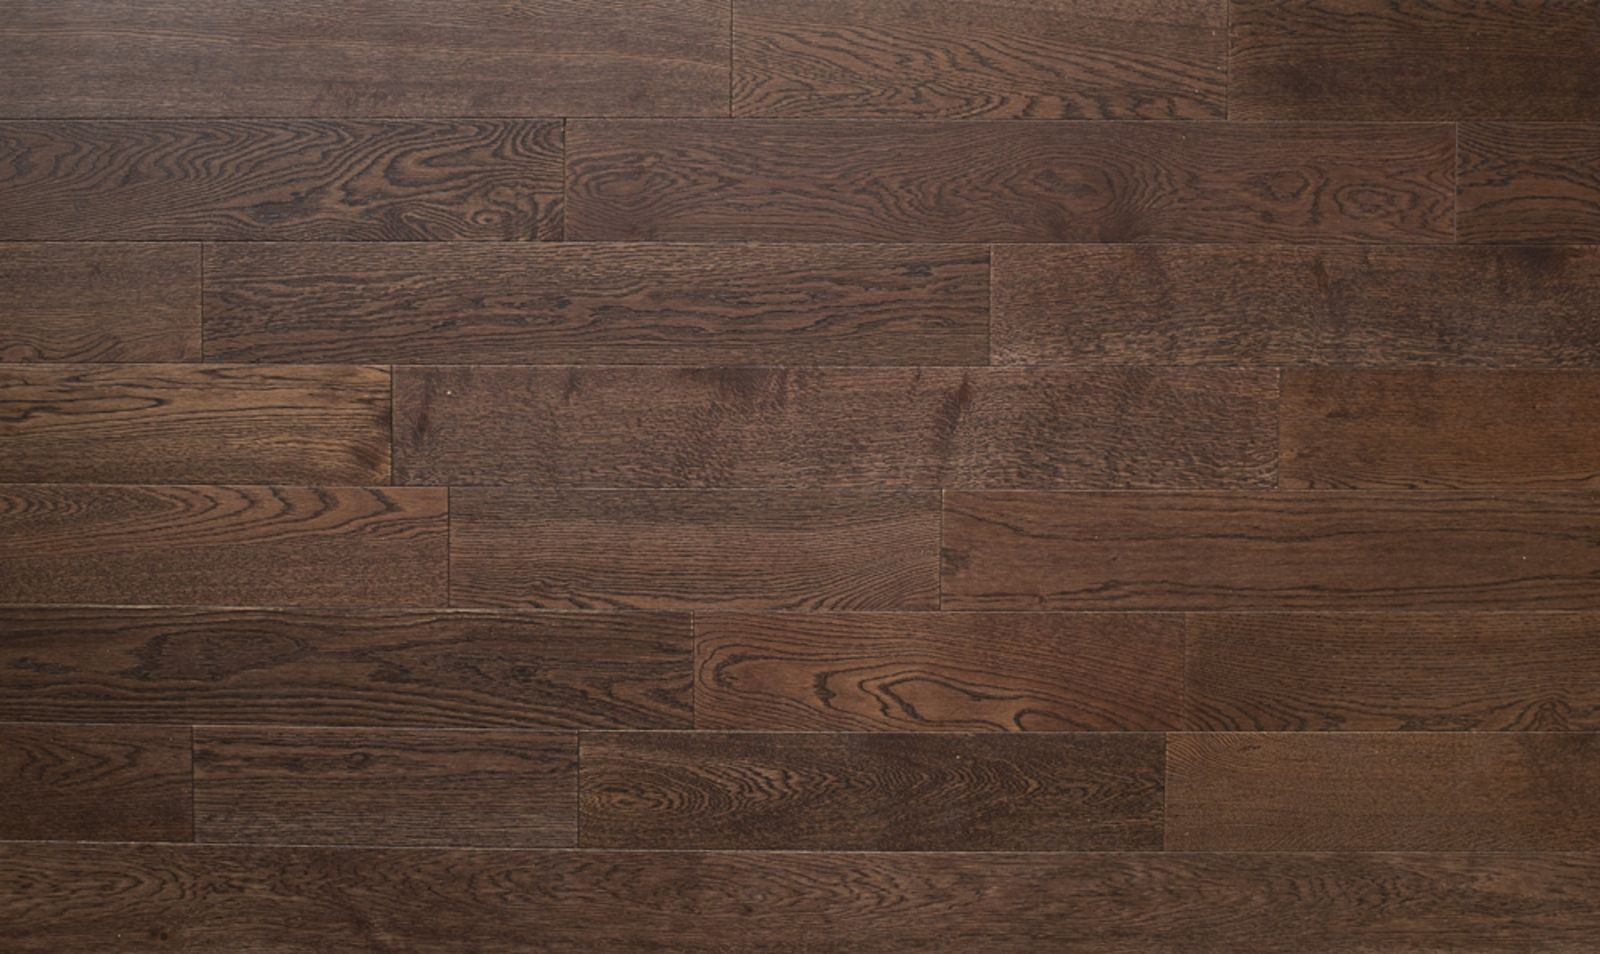 Wenge Oak Solid Wood Flooring engineered wenge solid oak hardwood flooring (with images